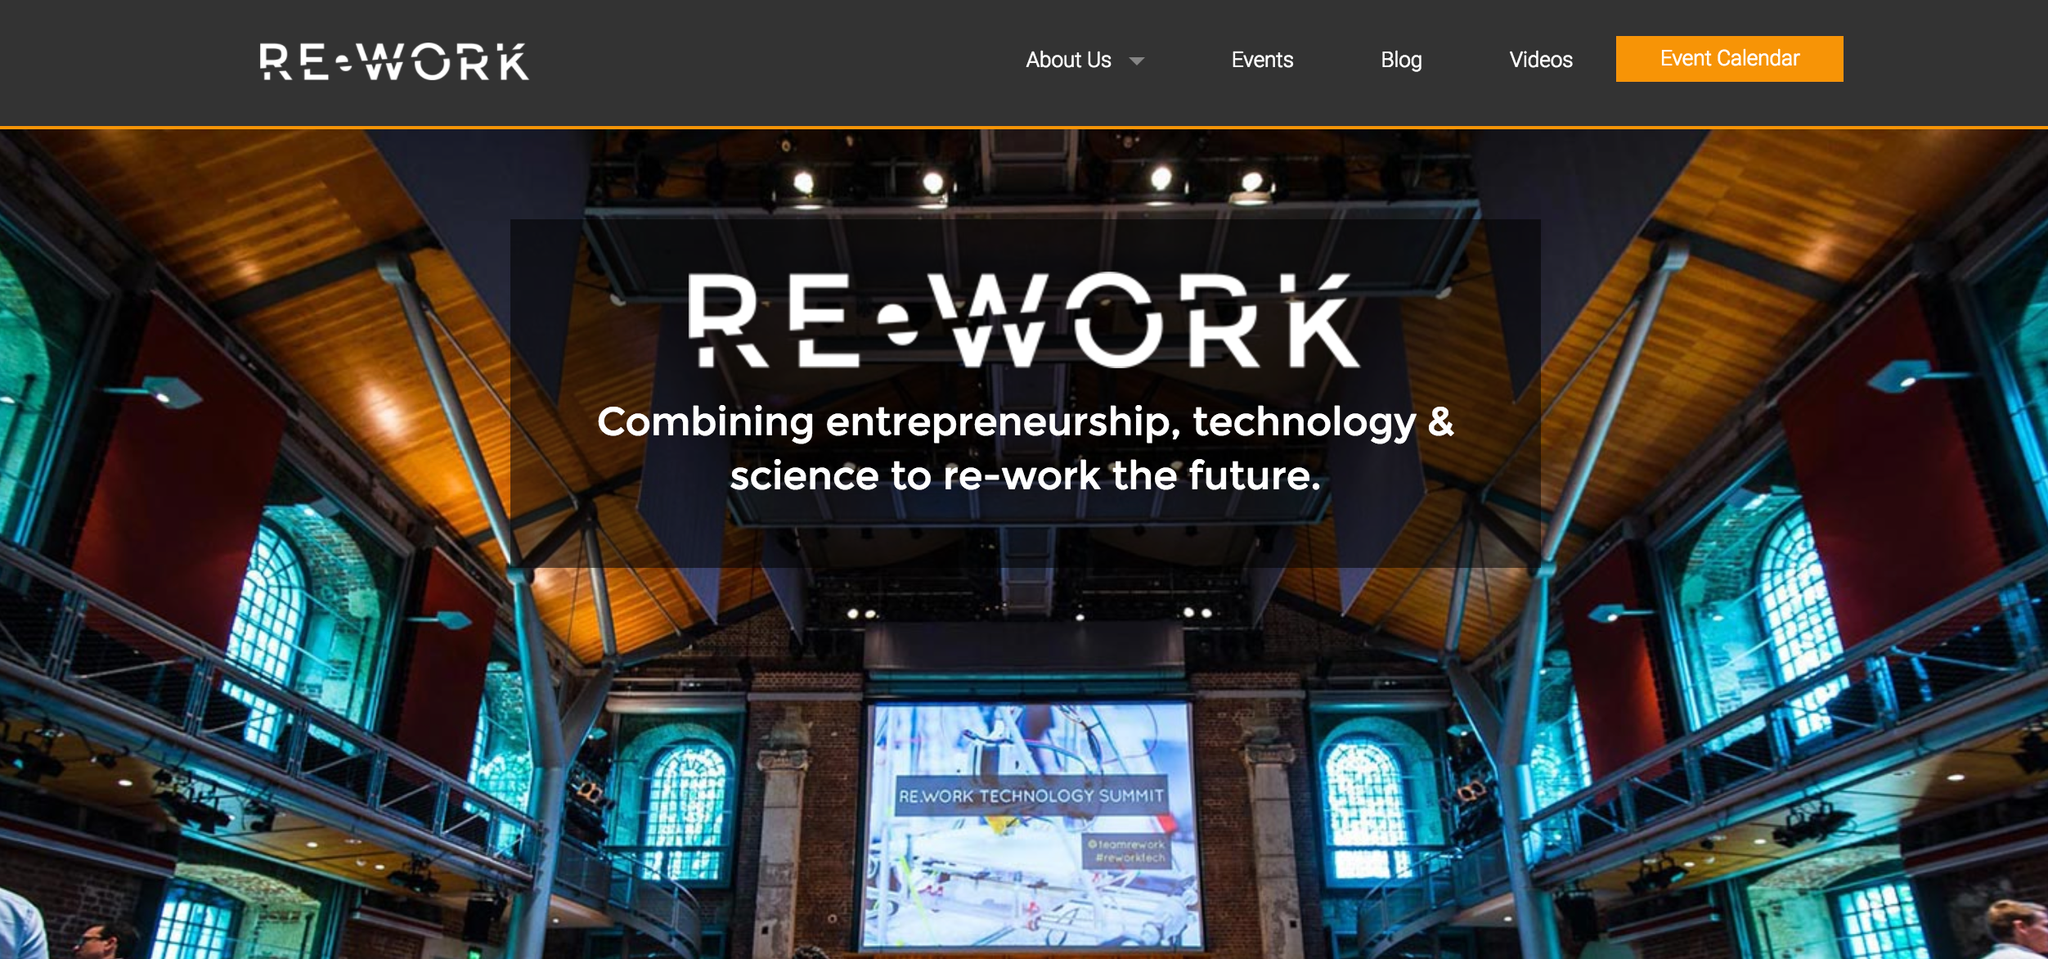 Screenshot of the RE•WORK website